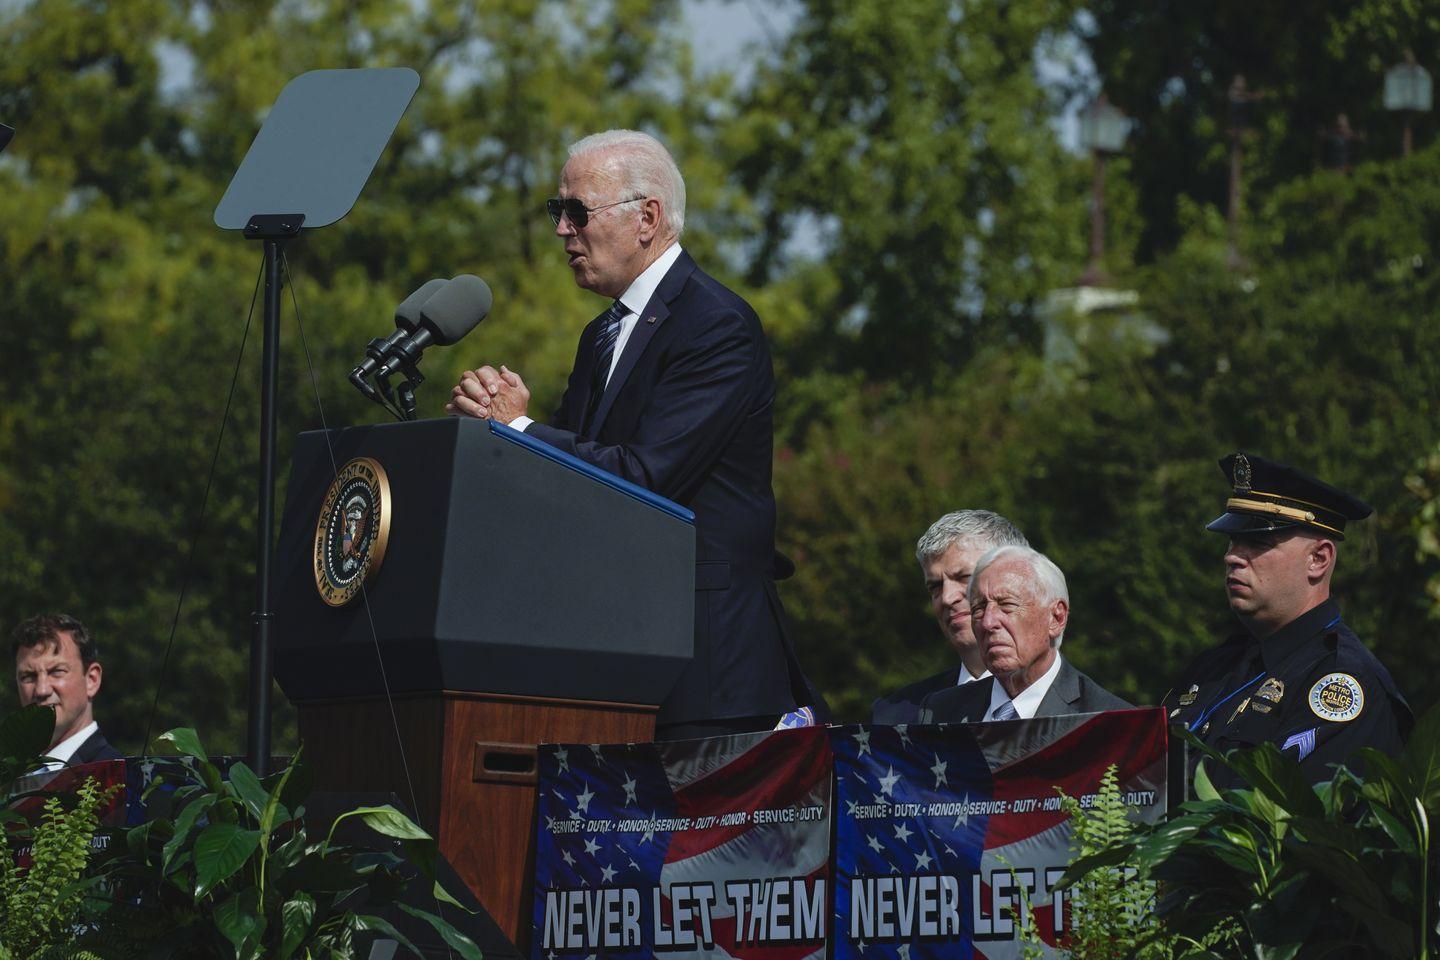 Biden aims to connect with police through personal tragedy